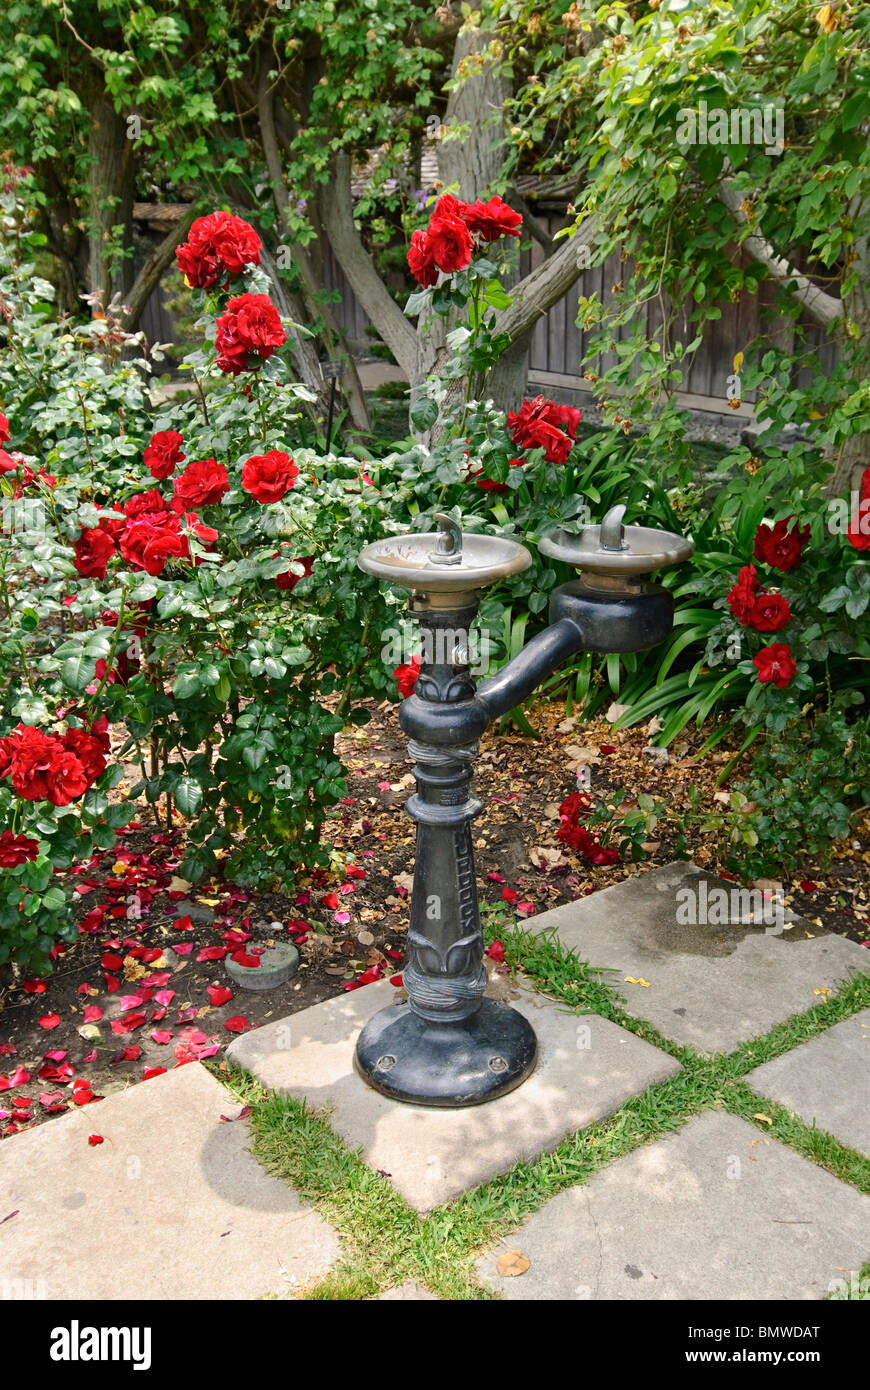 A Decorative Drinking Fountain In The Rose Garden At The Huntington Stock Photo Alamy